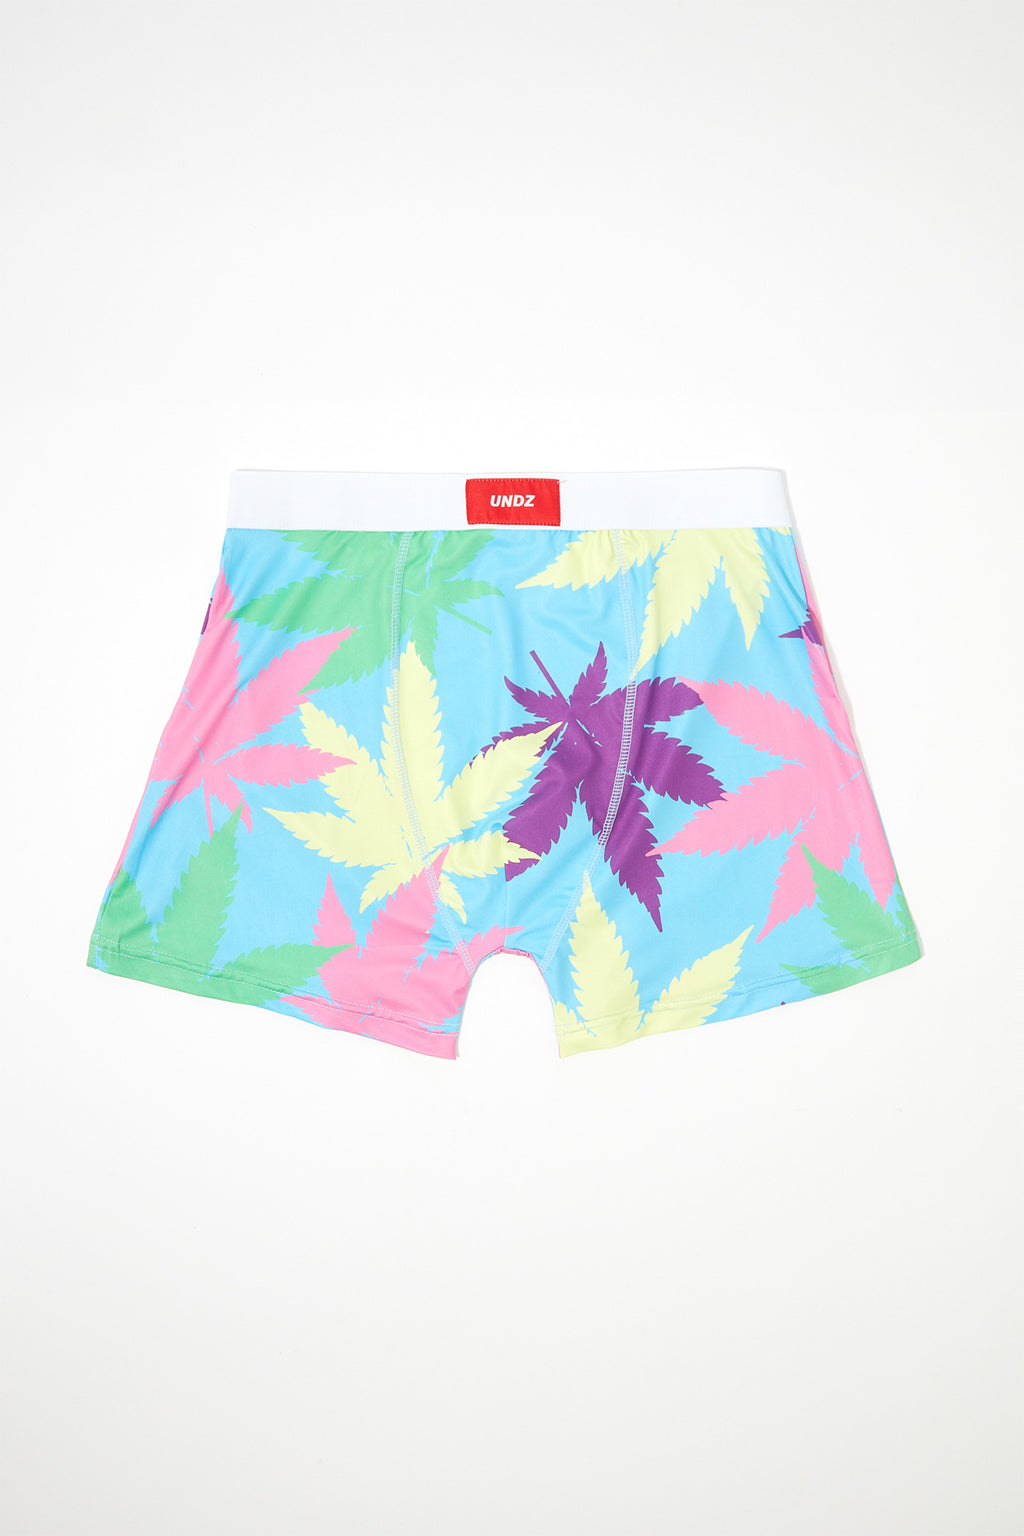 UNDZ Mens Leaf Boxer Brief